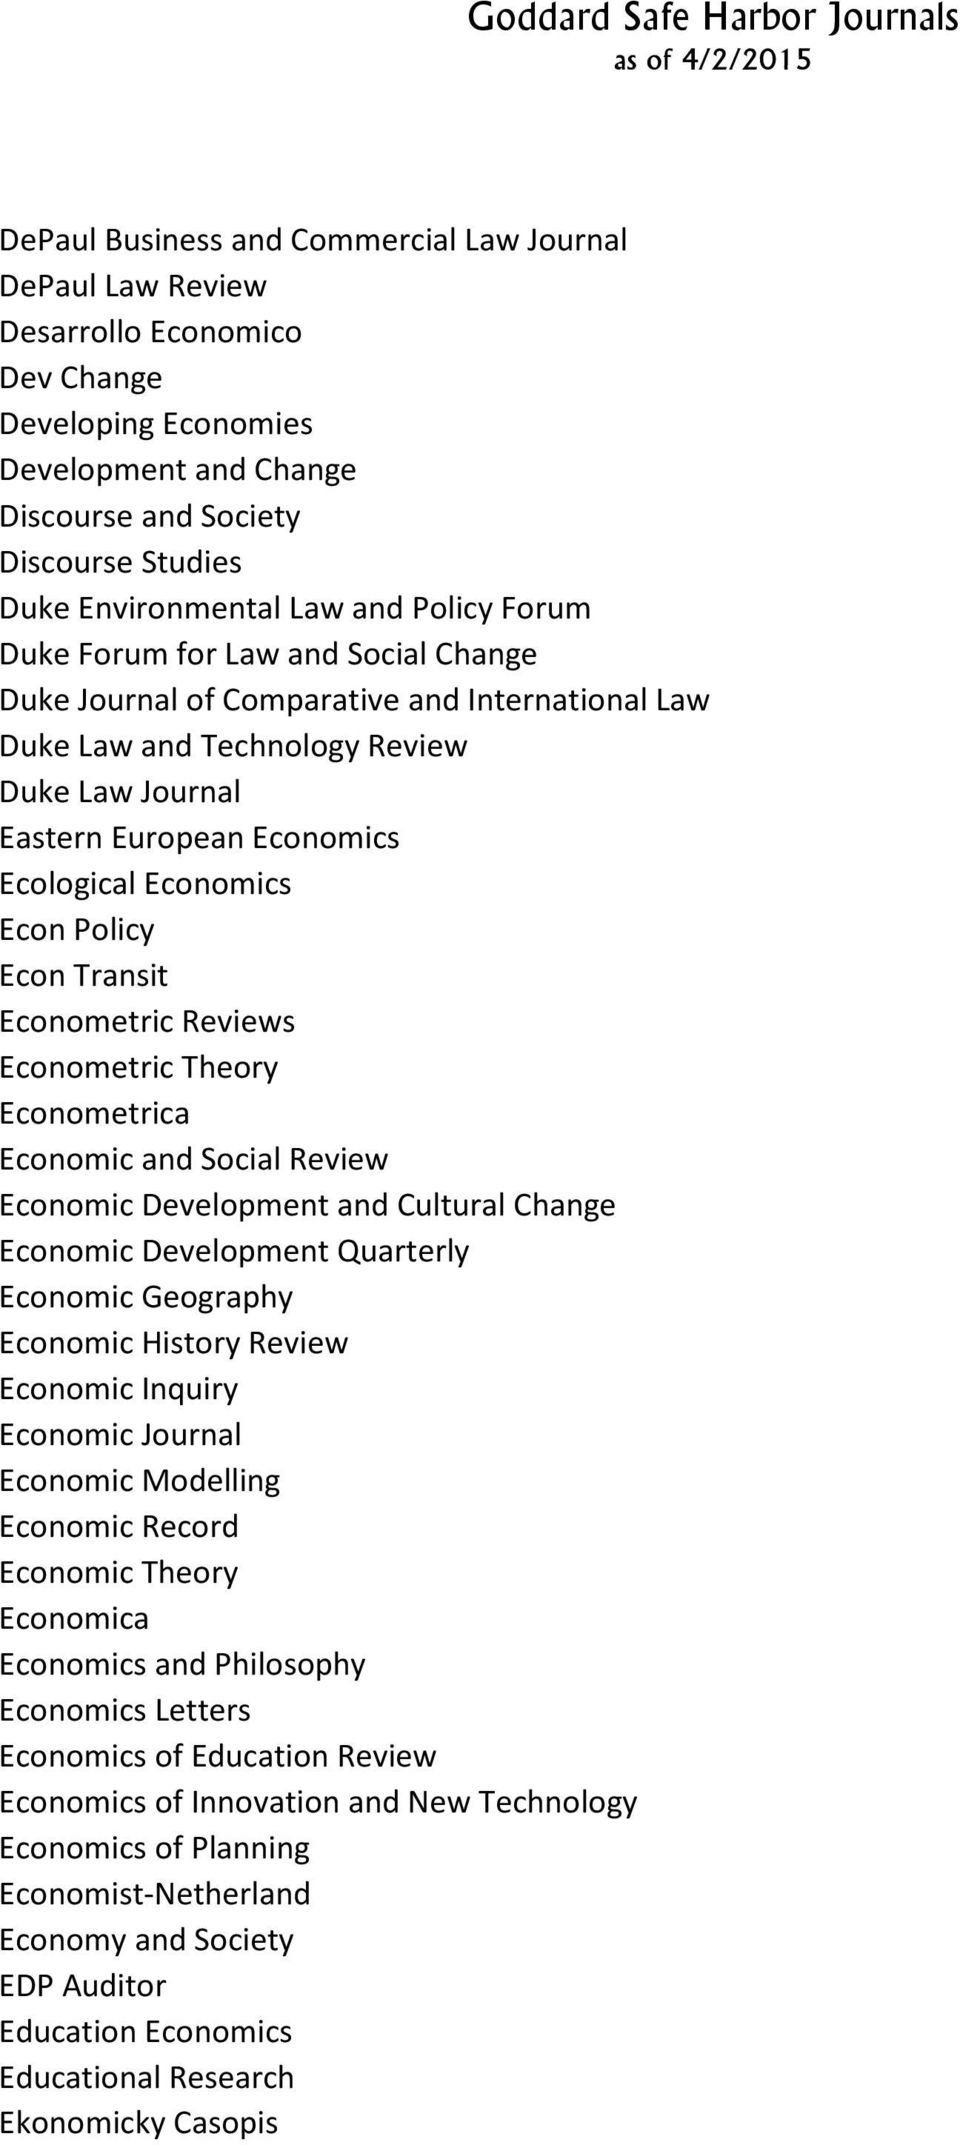 Econ Policy Econ Transit Econometric Reviews Econometric Theory Econometrica Economic and Social Review Economic Development and Cultural Change Economic Development Quarterly Economic Geography